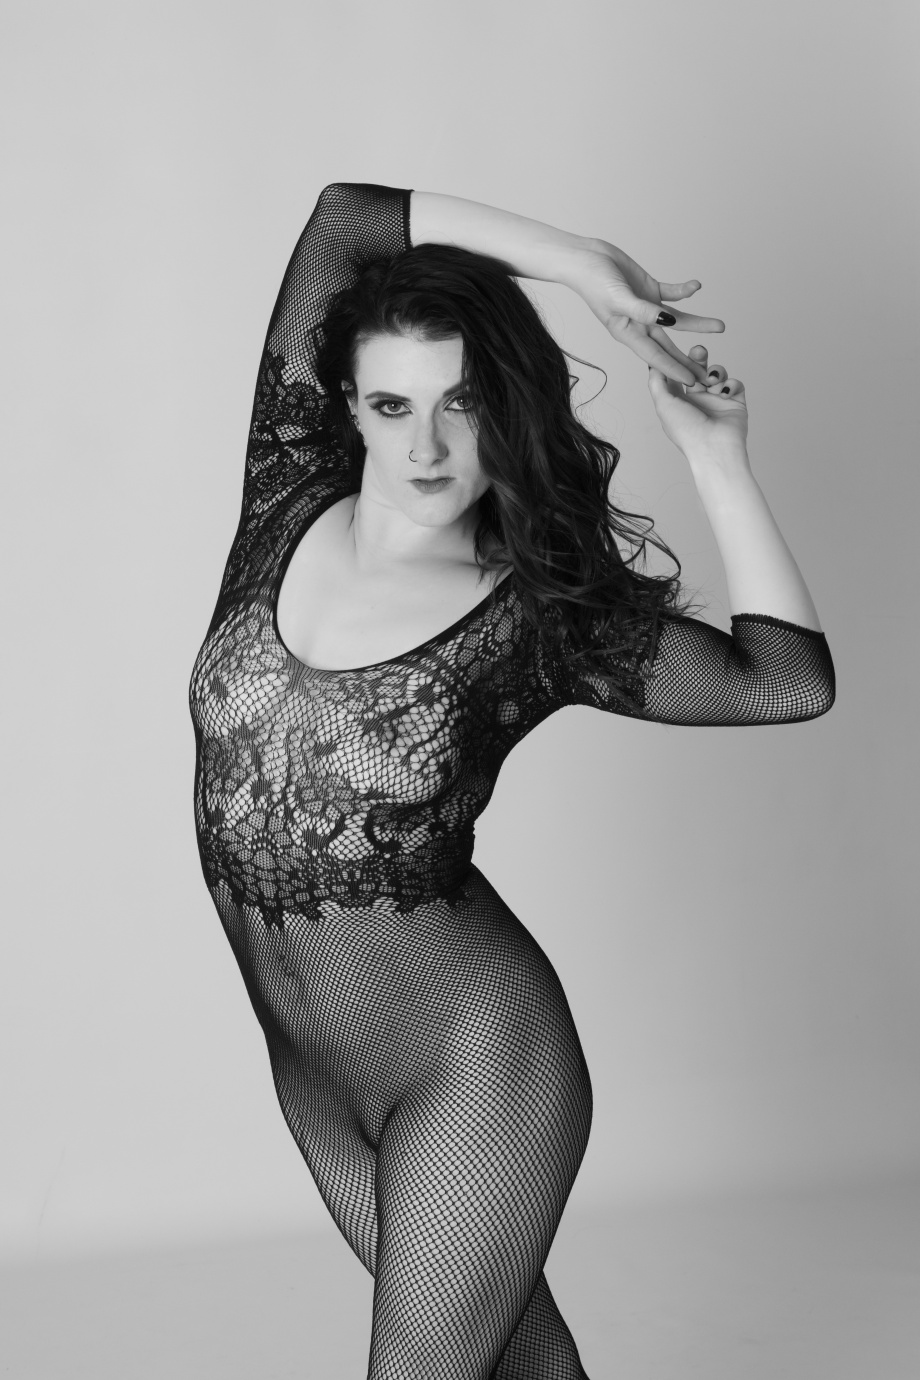 stacey spykes, stacey duggan, pole, dance, pole training, topless, black and white, implied, glamour, studio